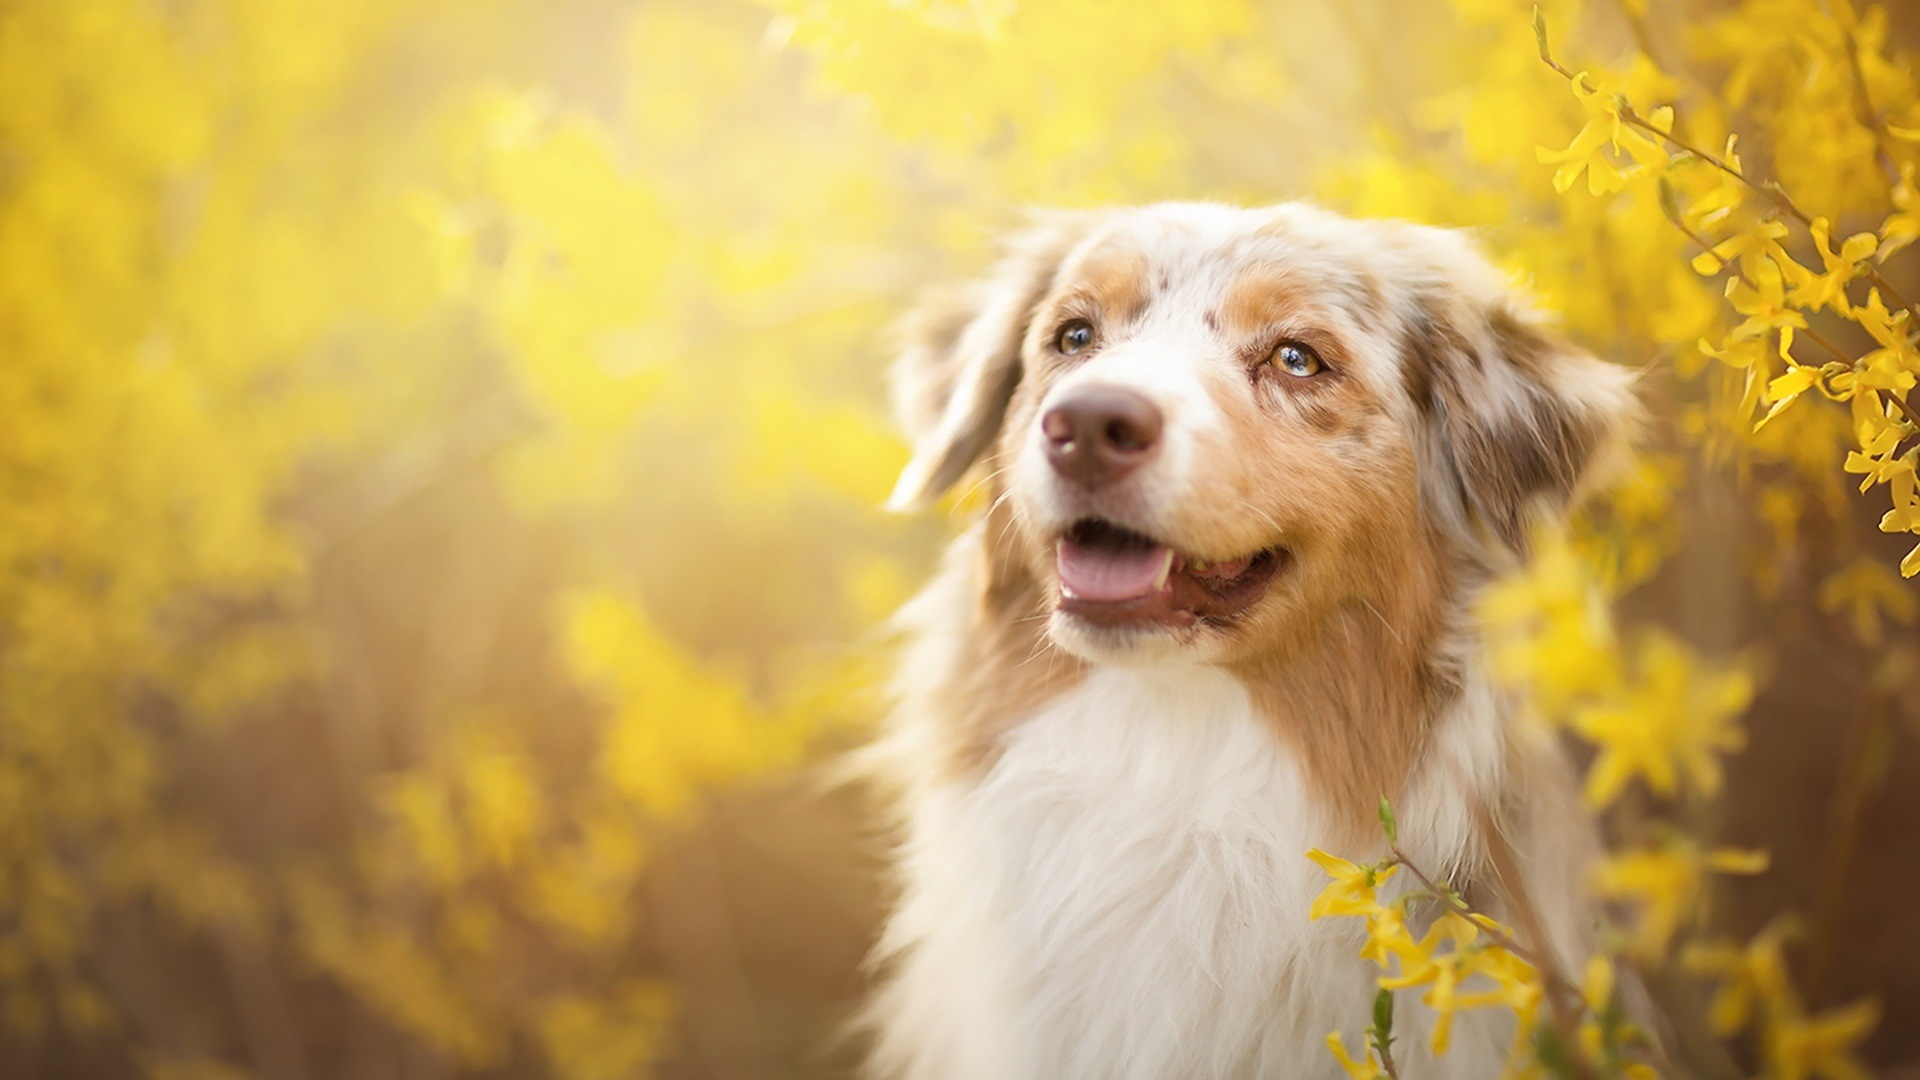 wallpaper dog, yellow flowers, spring 1920x1080 full hd picture, image